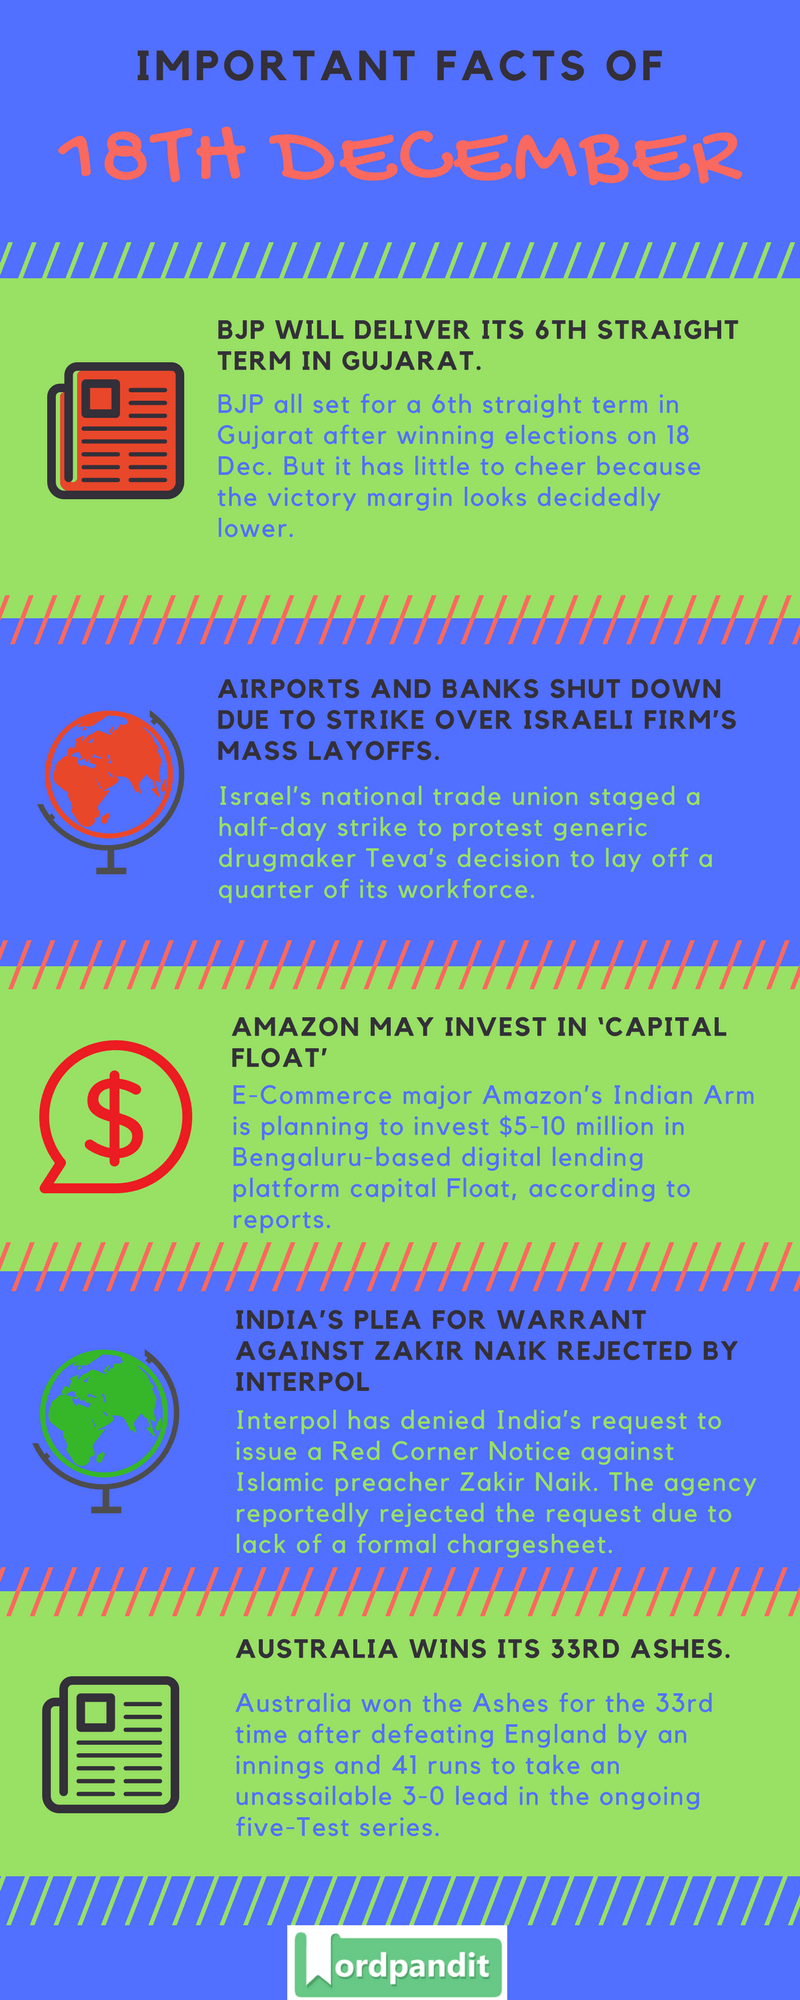 Daily-Current-Affairs-18-december-2017-Current-Affairs-Quiz-december-18-2017-Current-Affairs-Infographic